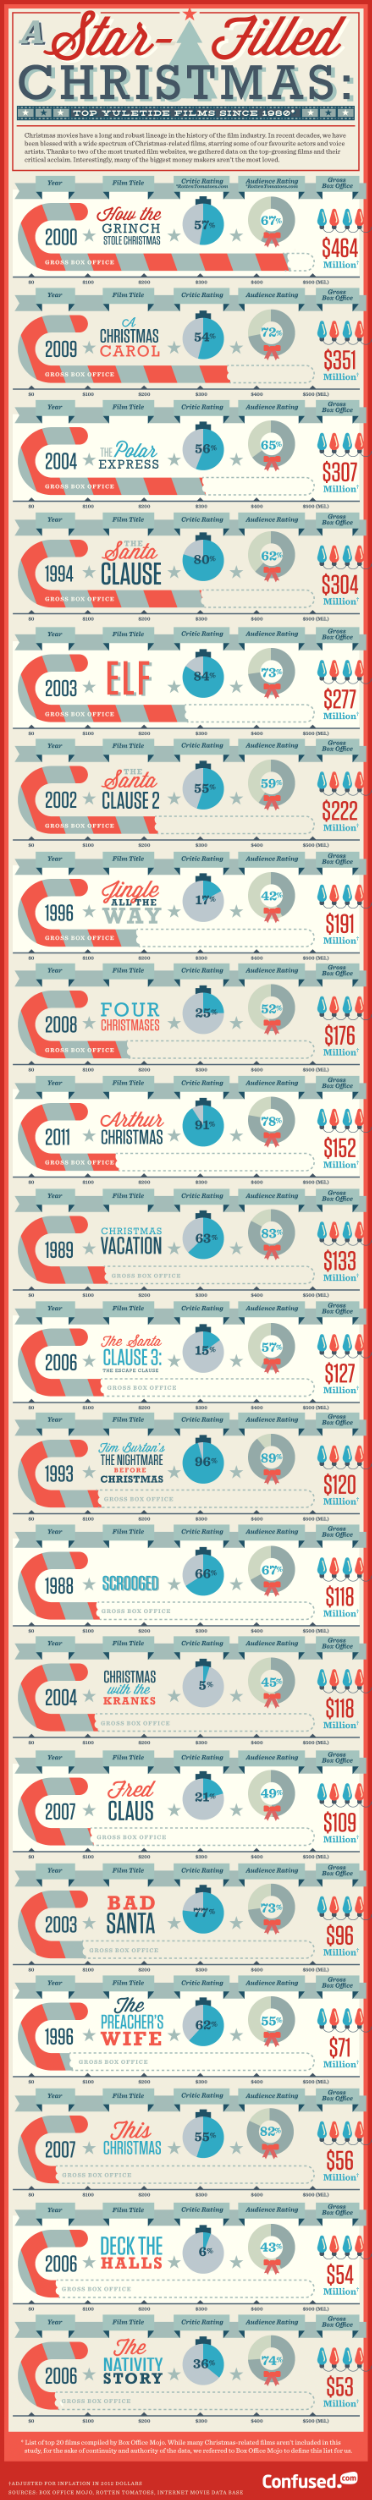 Source: http://www.confused.com/news-views/infographics/top-christmas-films-since-1980